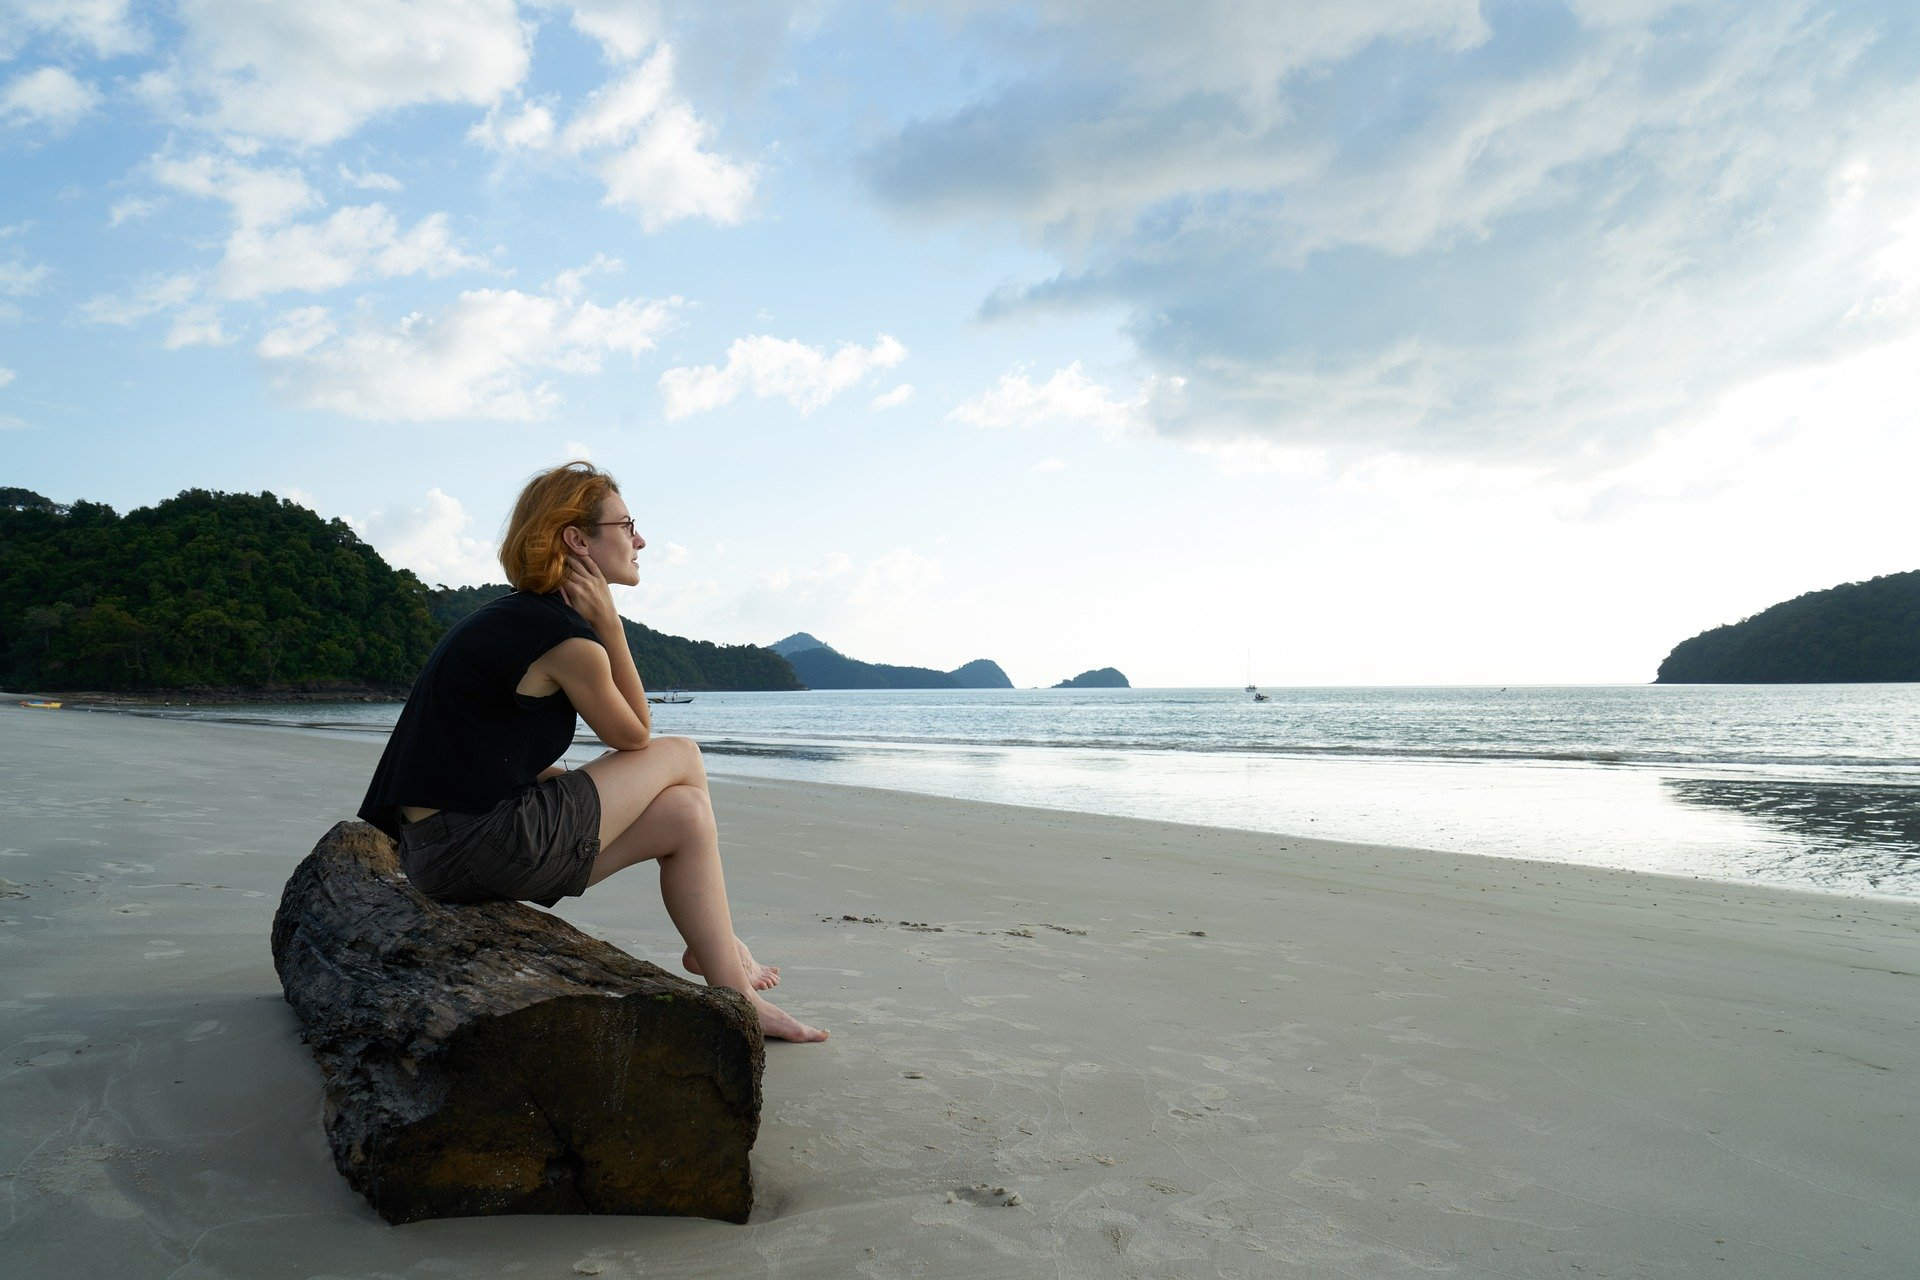 lonely woman sitting on a rock looking at water